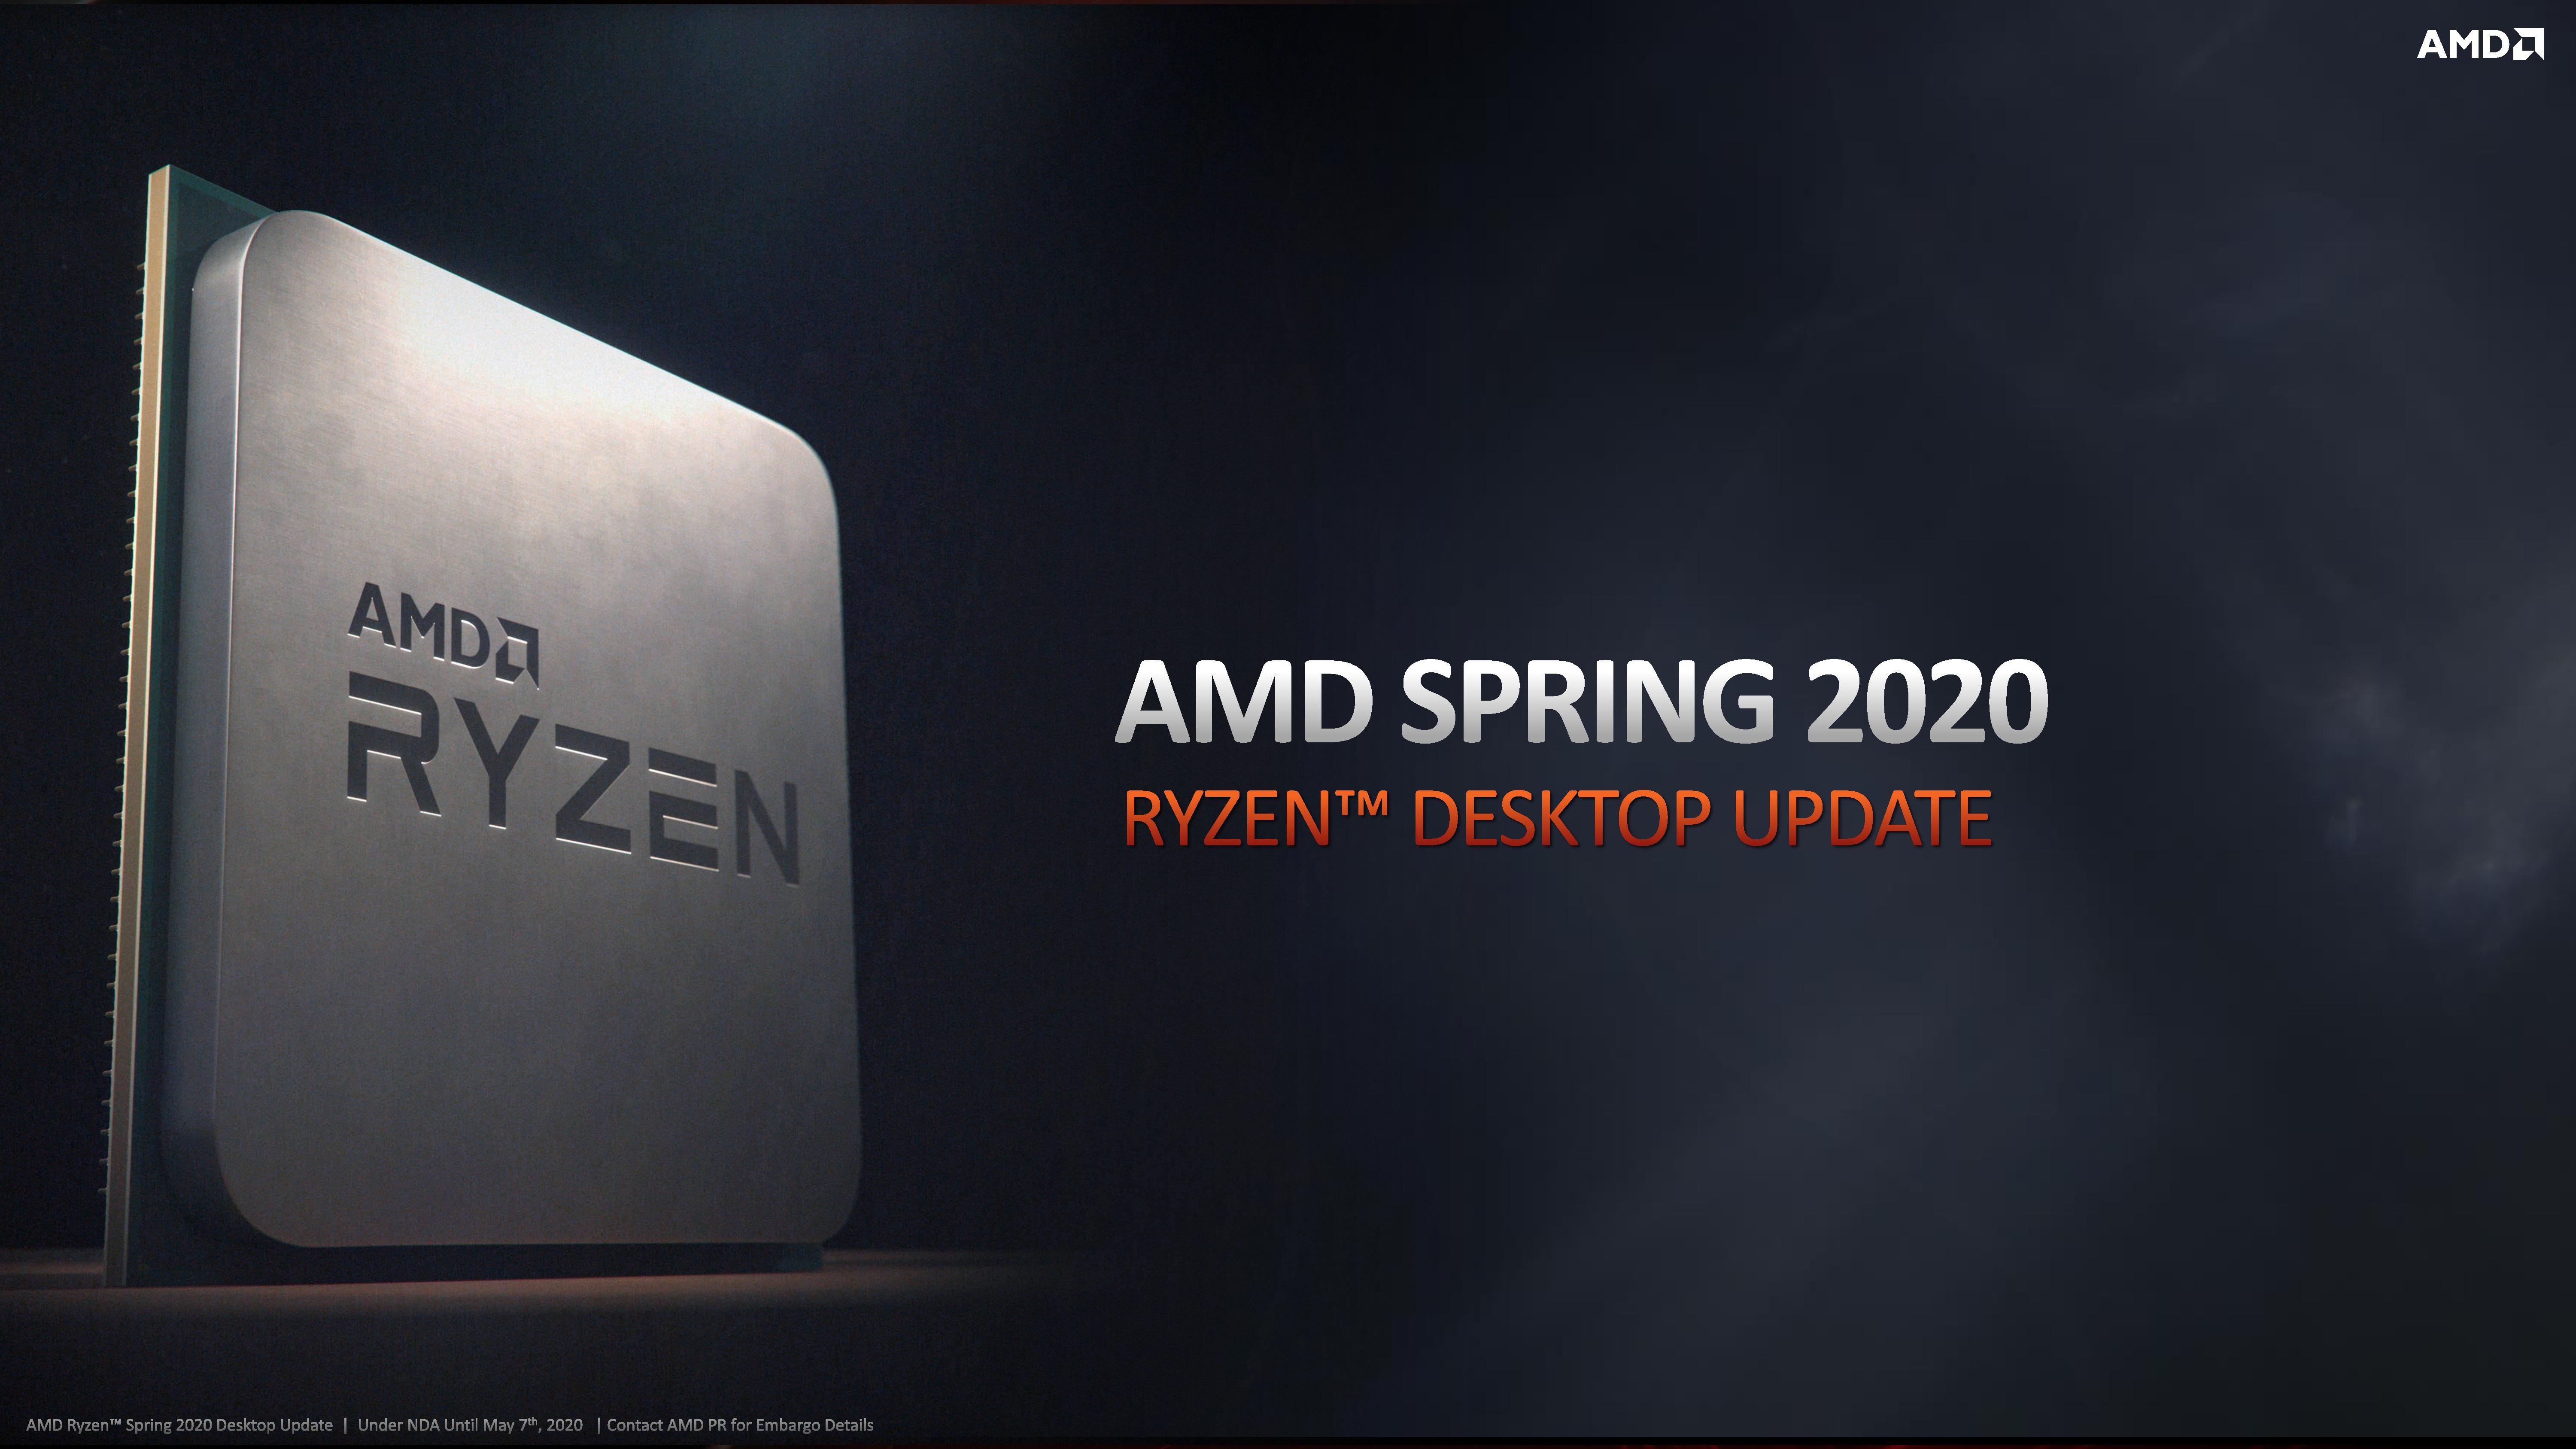 Amd Ryzen 3 3300x And 3100 Conclusion The Amd Ryzen 3 3300x And 3100 Cpu Review A Budget Gaming Bonanza